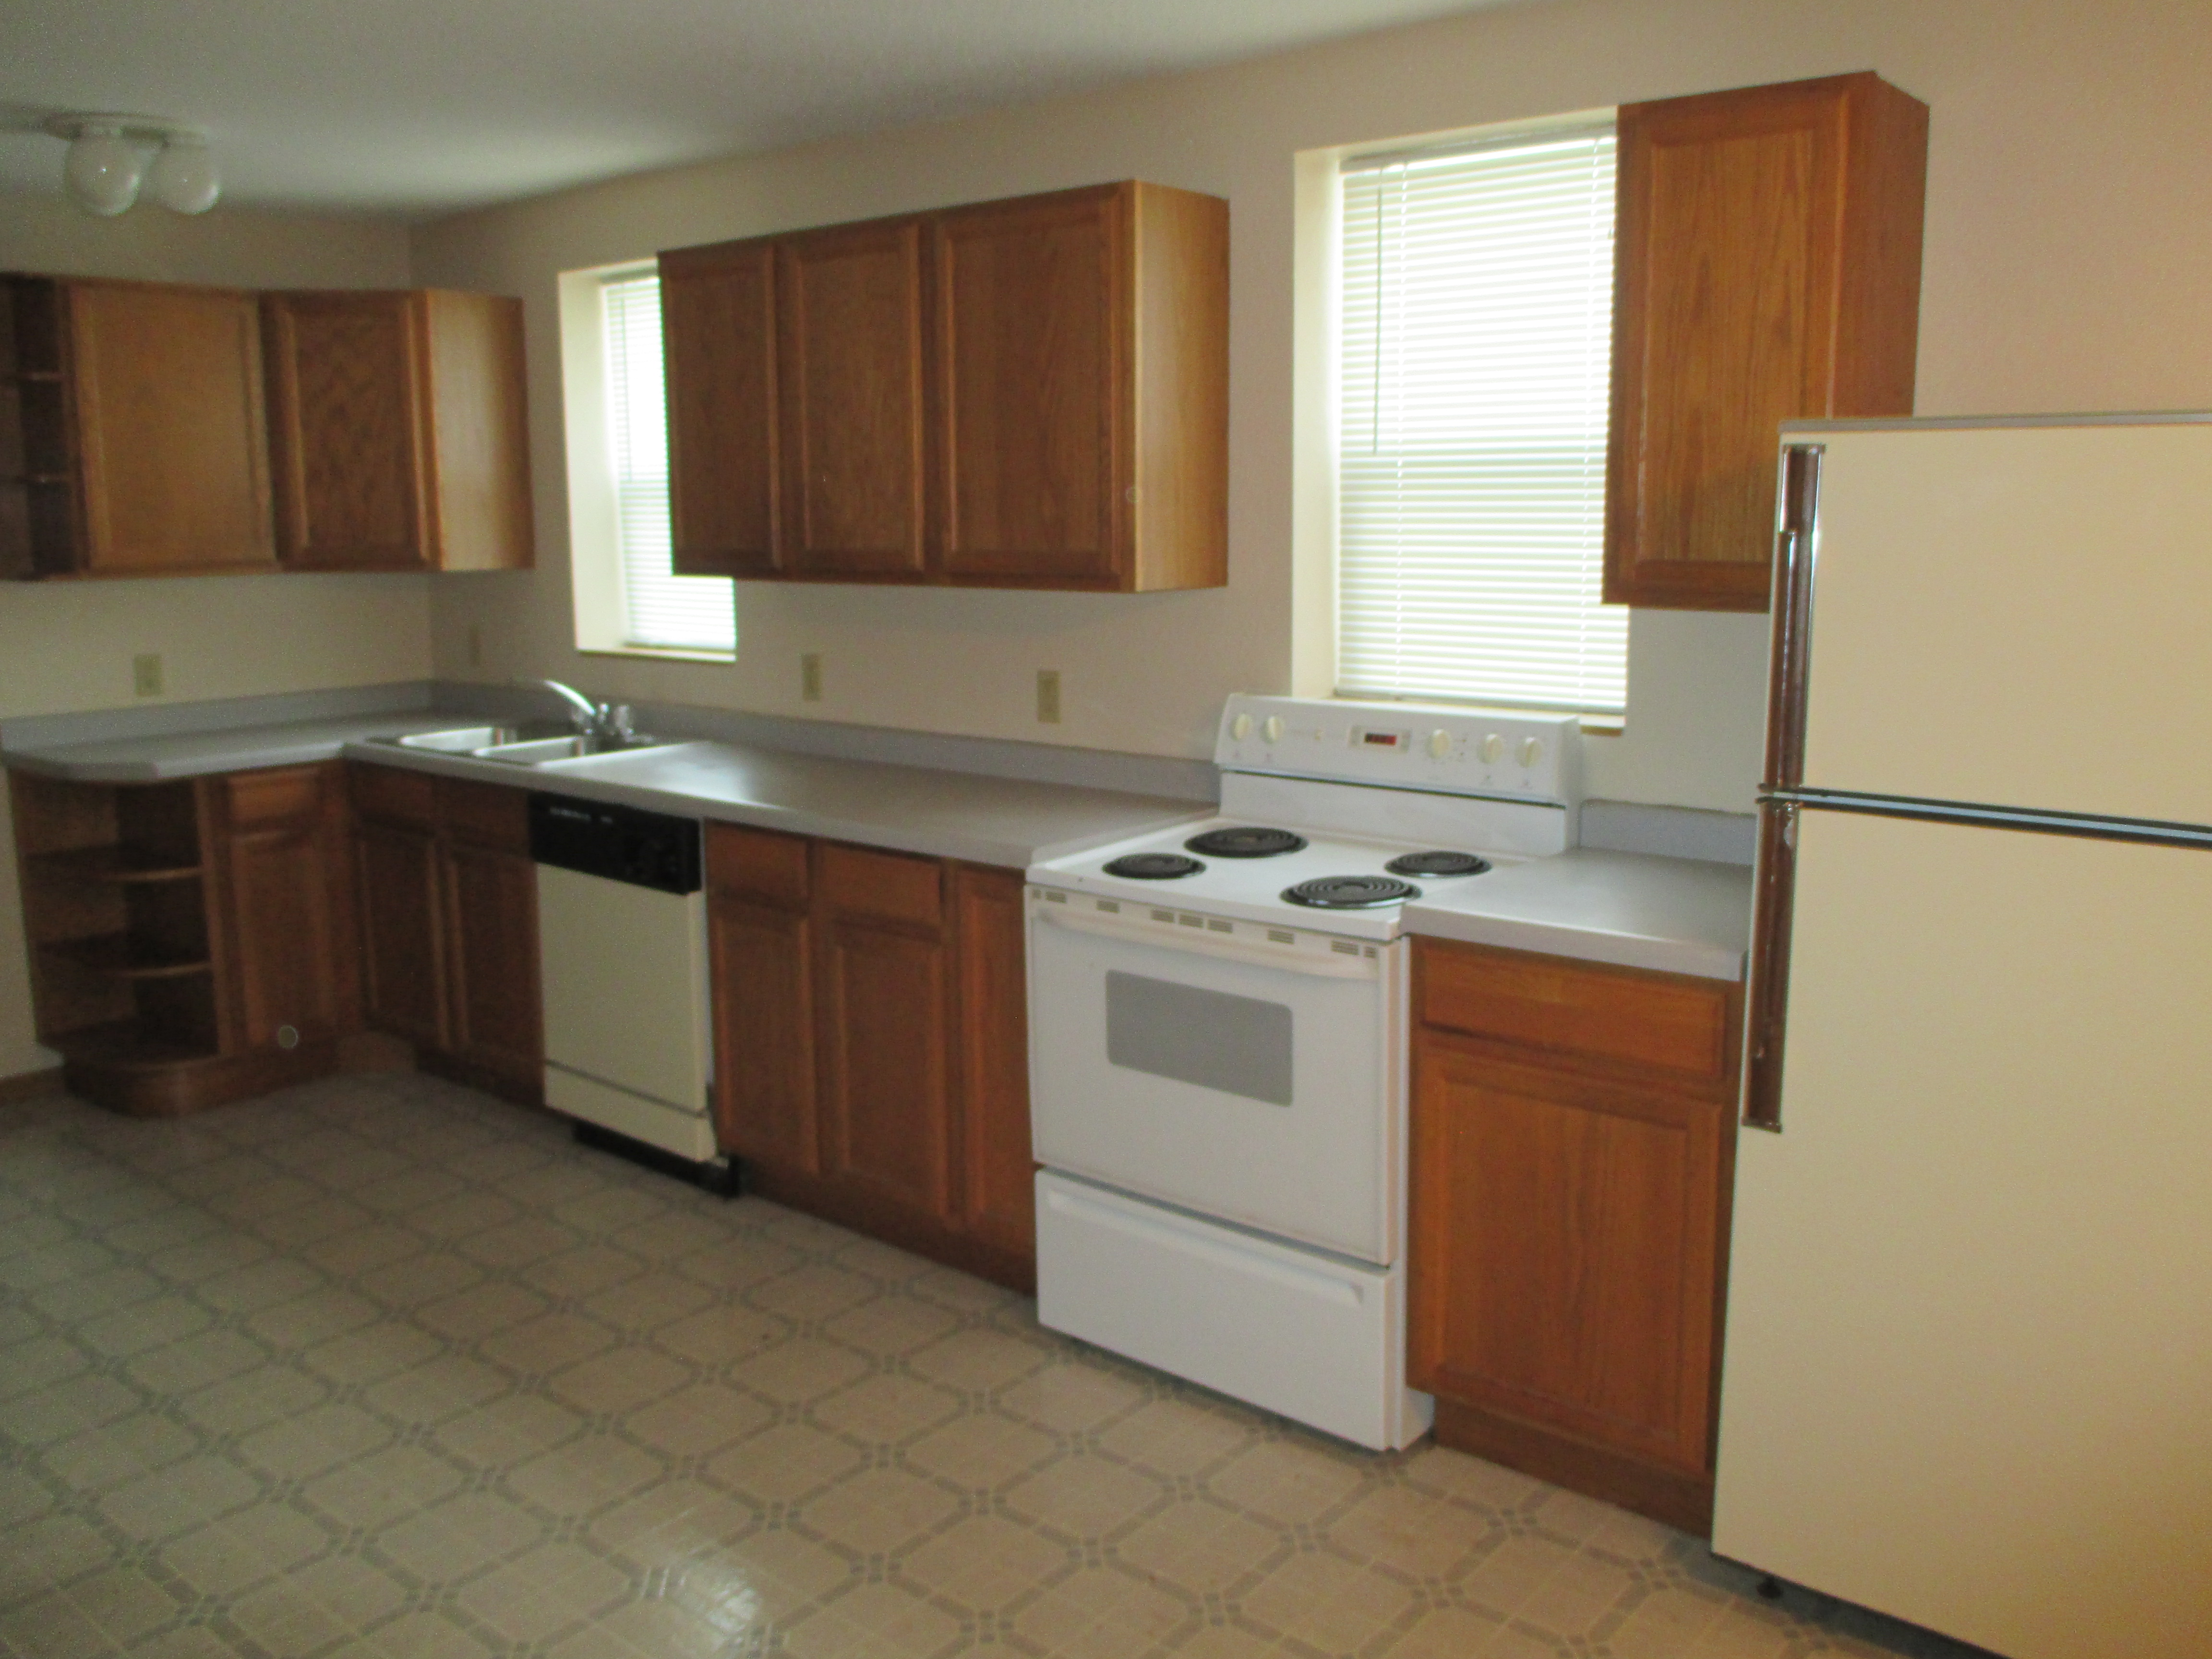 Apartments For Rent In Hinckley Mn